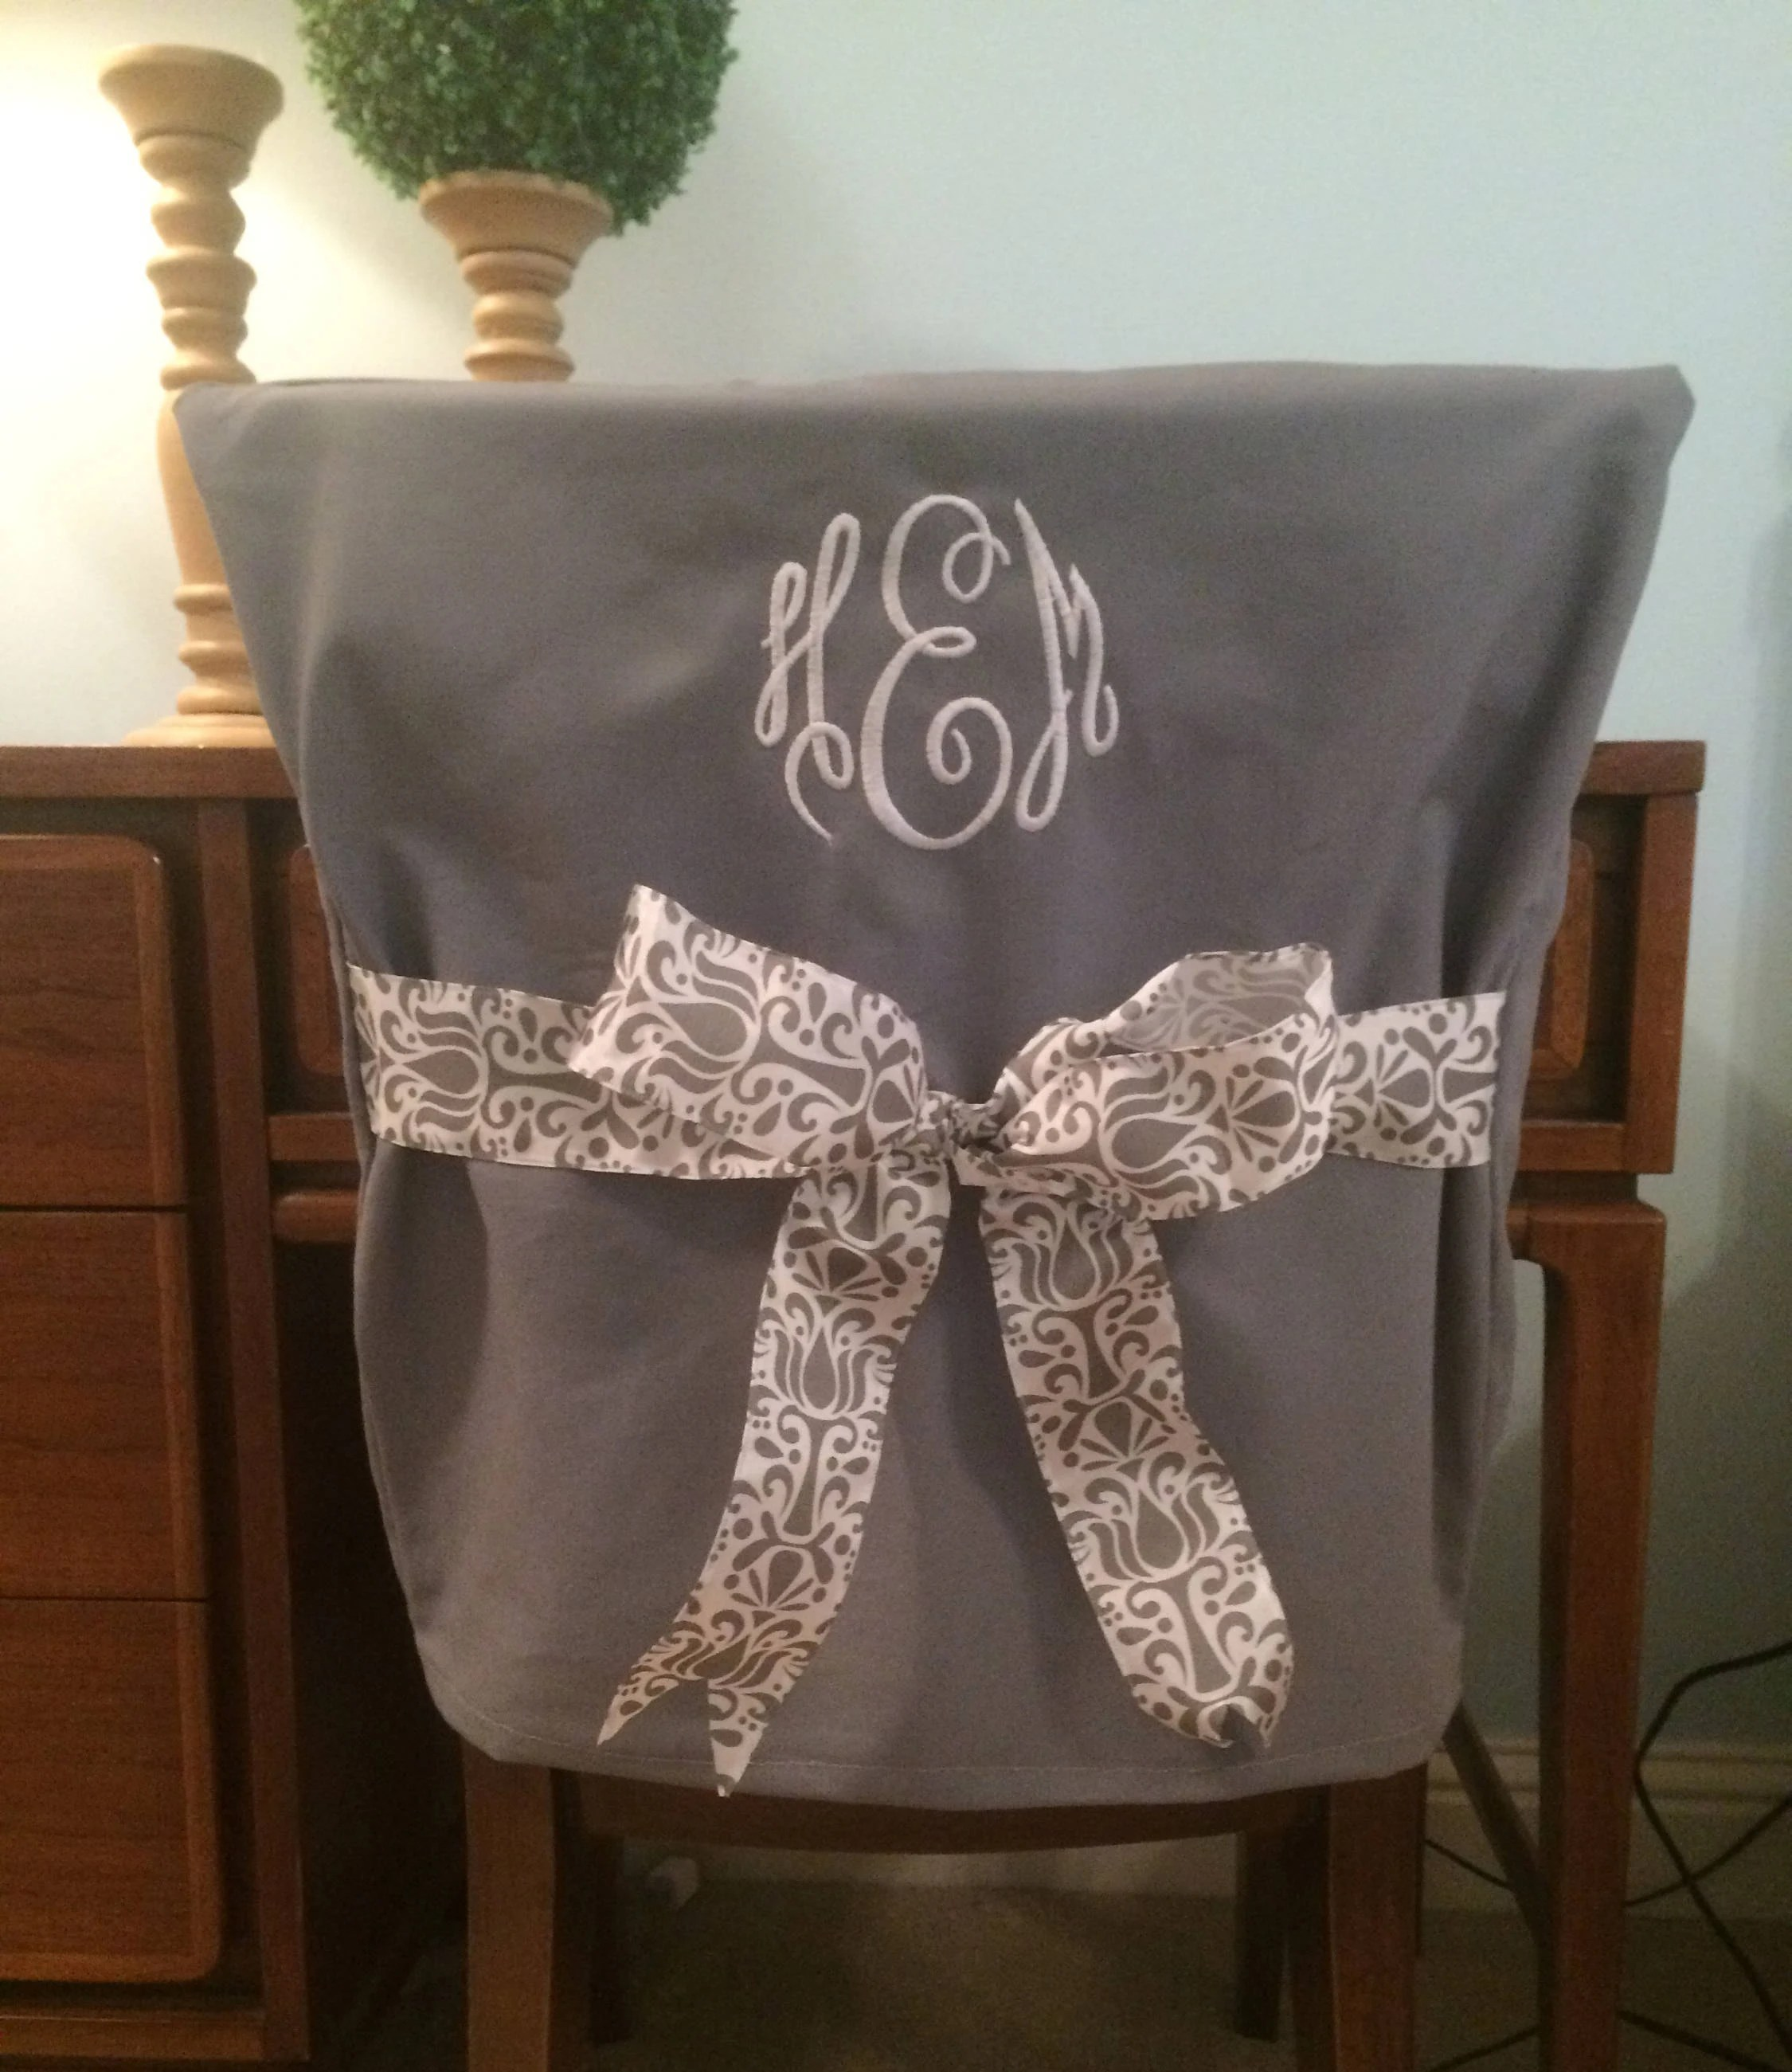 dining chair covers banquet for sale malaysia etsy desk gray monogrammed dorm back cover personalized office one size fits most